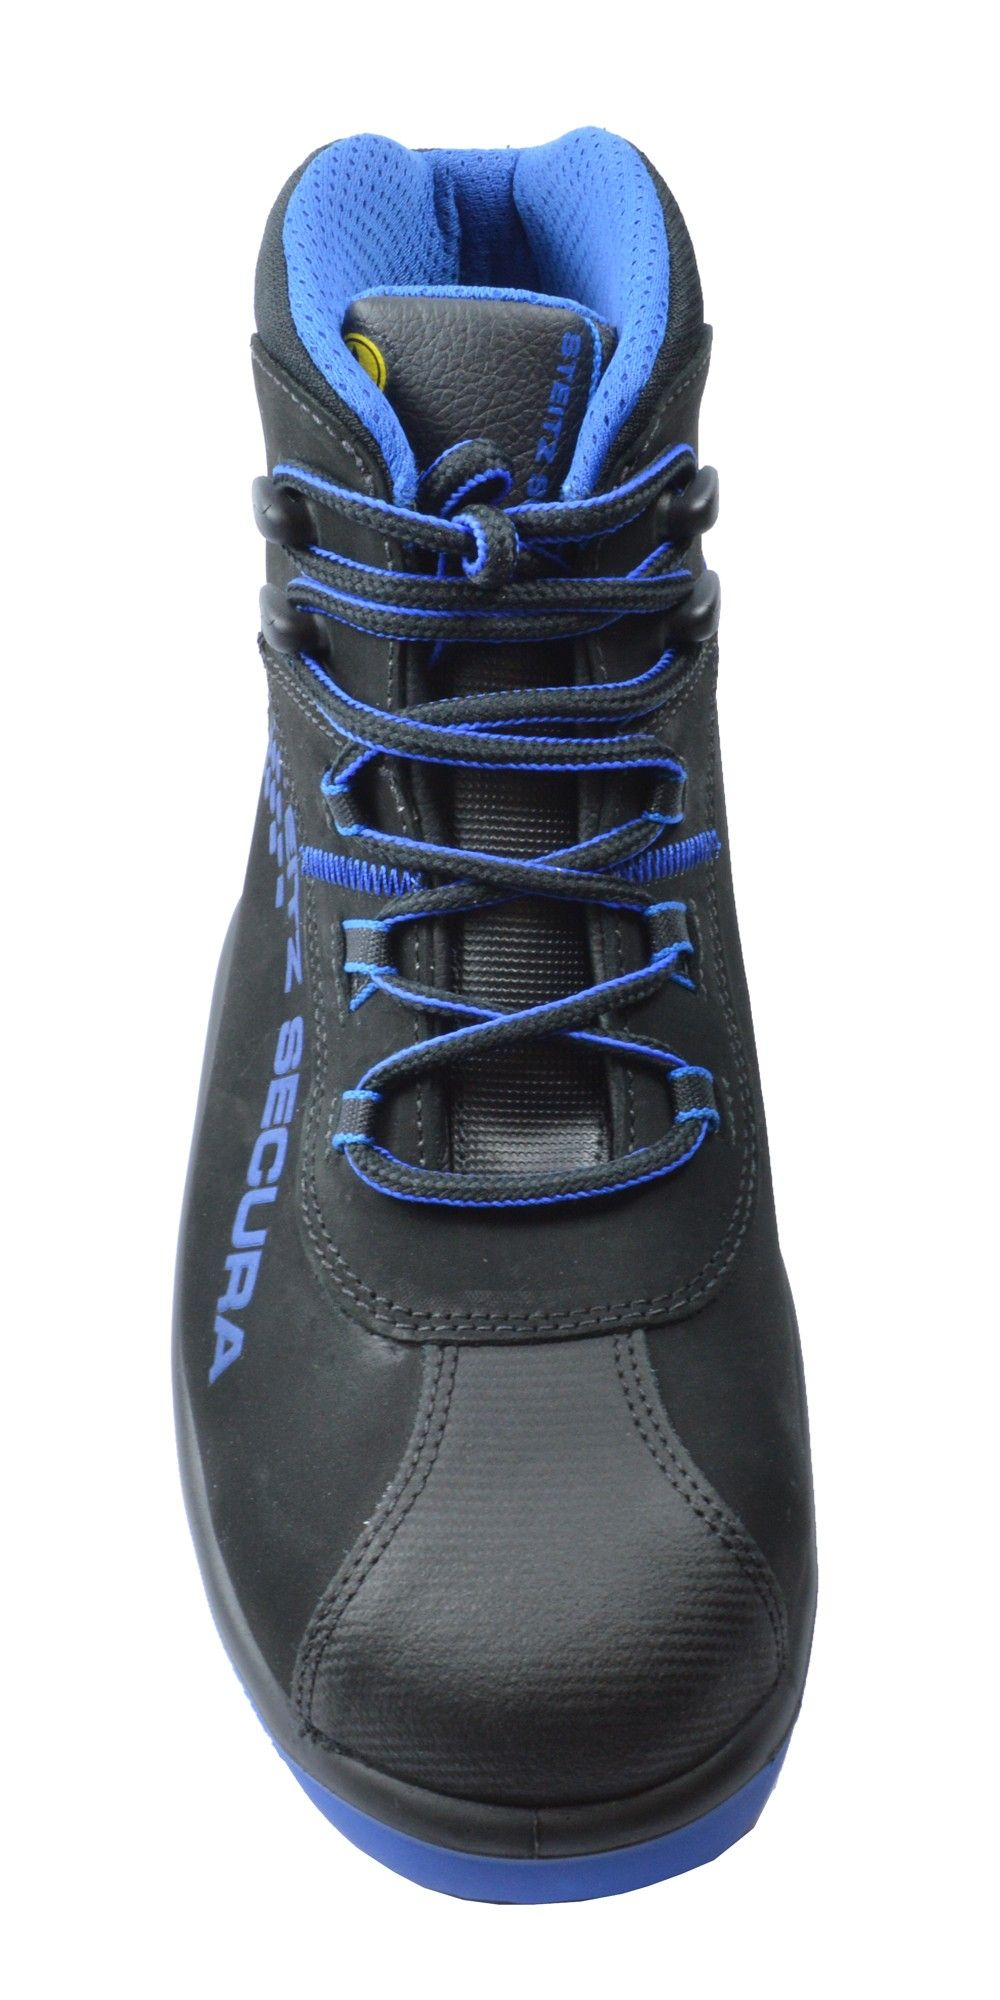 new york special discount of online sale Steitz Secura.Extra Wide Safety work Boots 4E Fitting B0014 ...